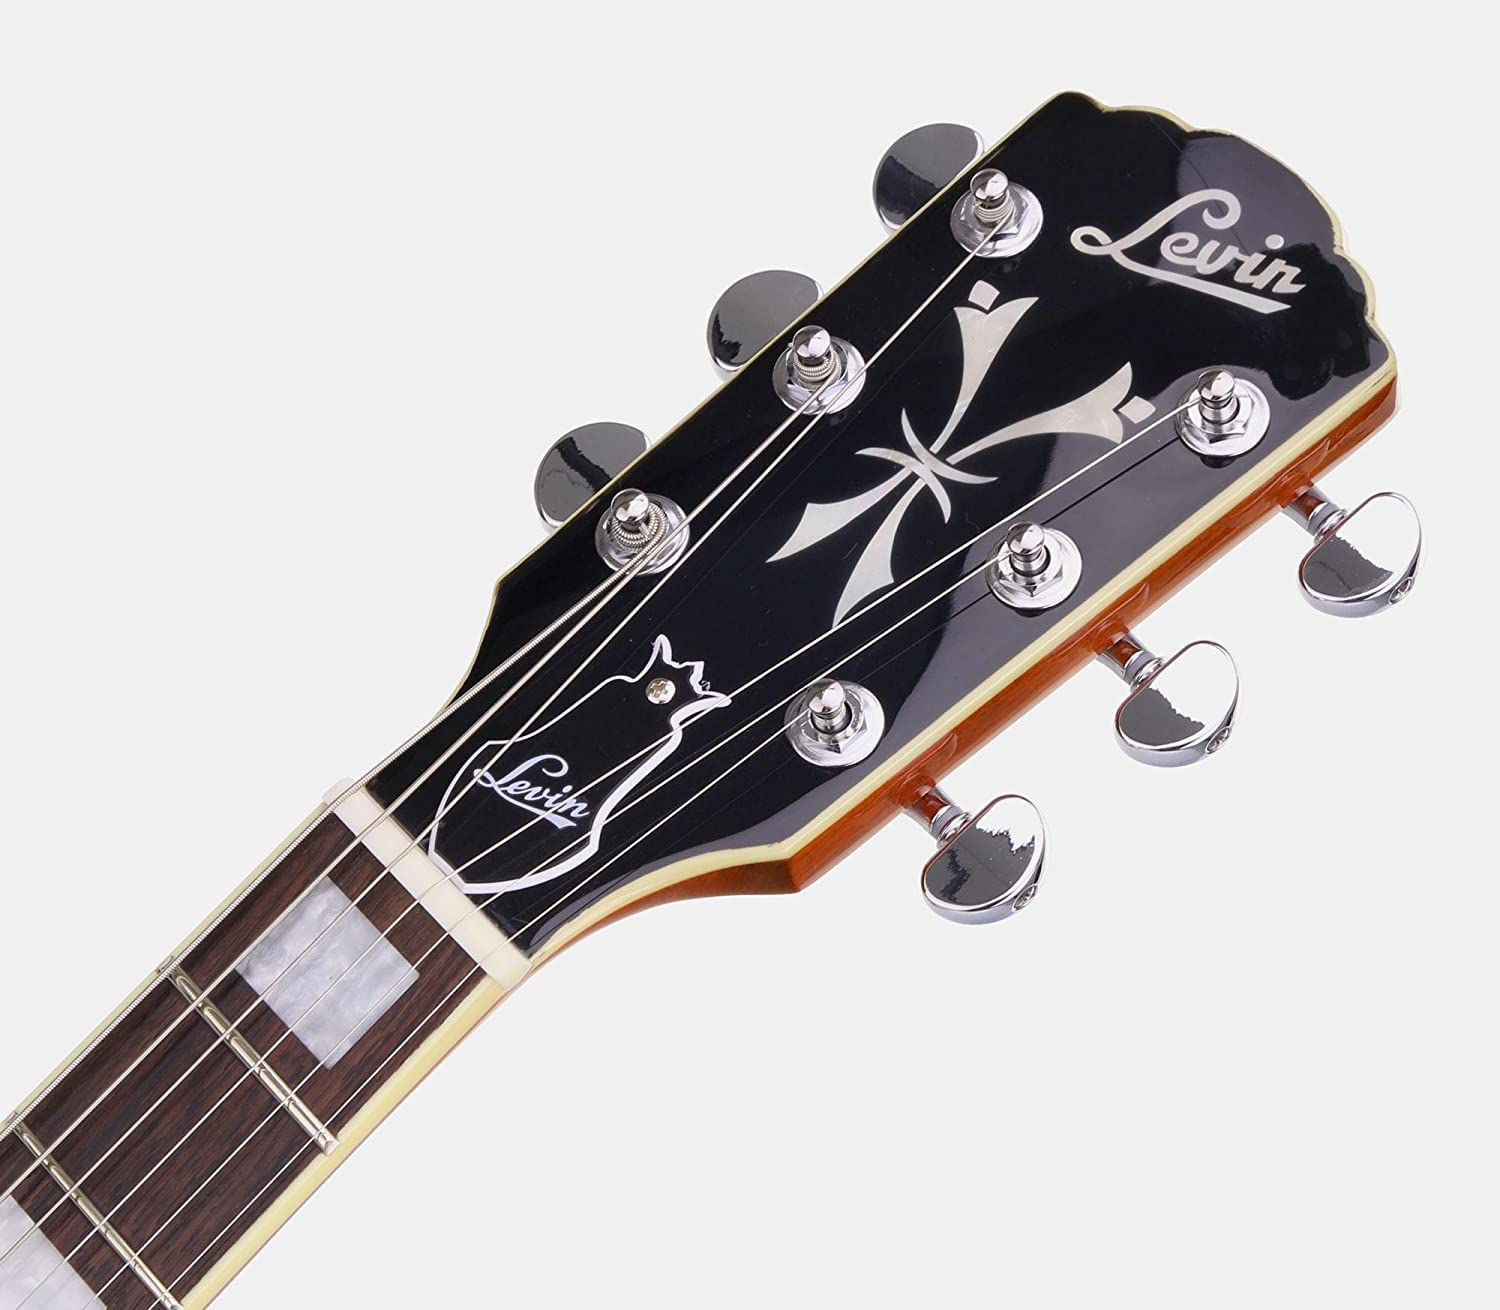 levin p 350 electric guitar musical instruments